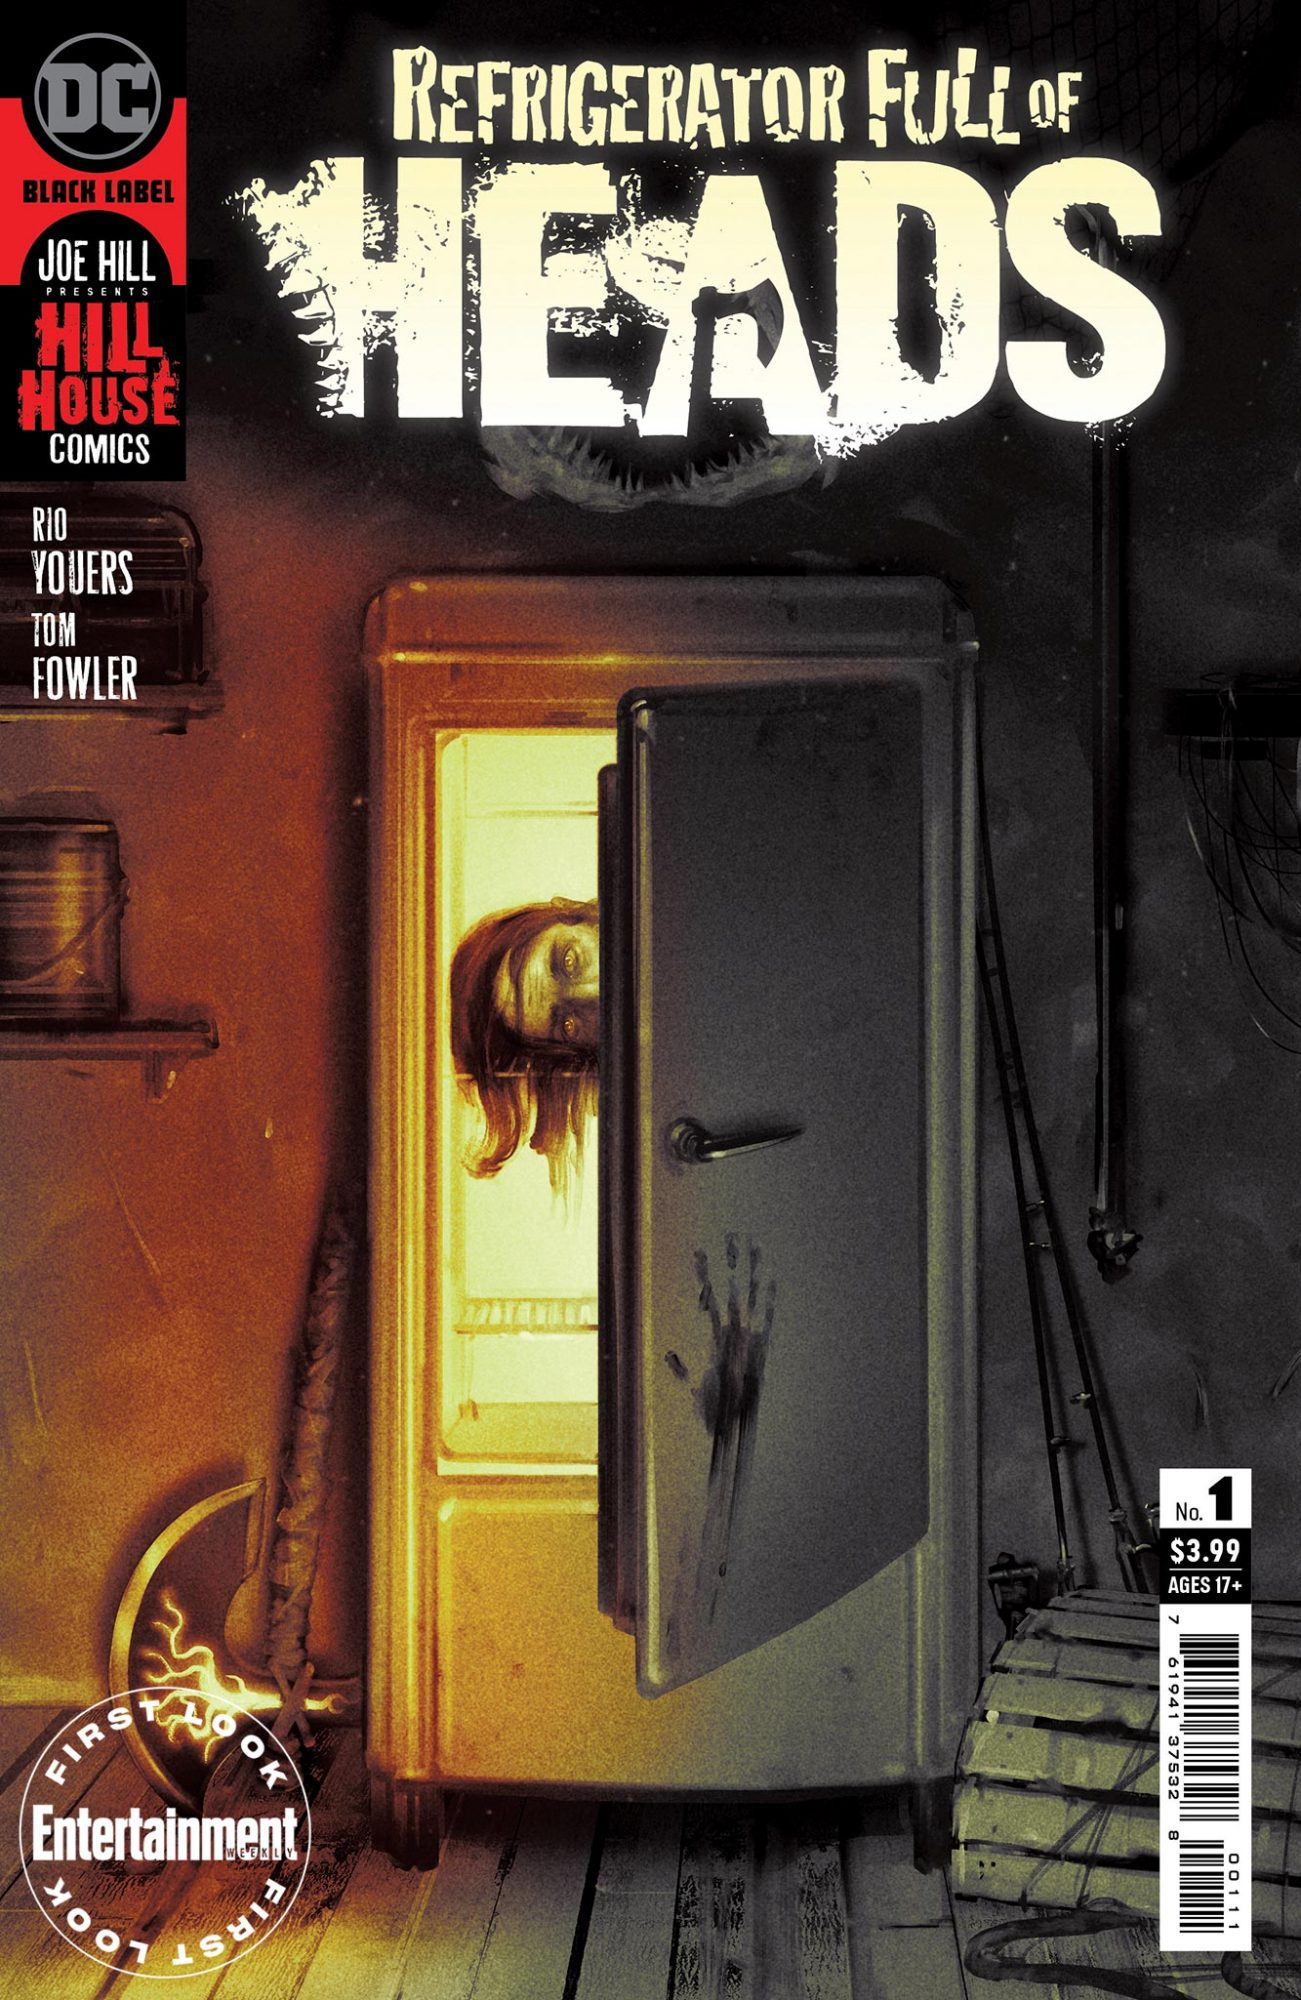 DC's Hill House Comics horror line returns with 'Refrigerator Full of Heads'